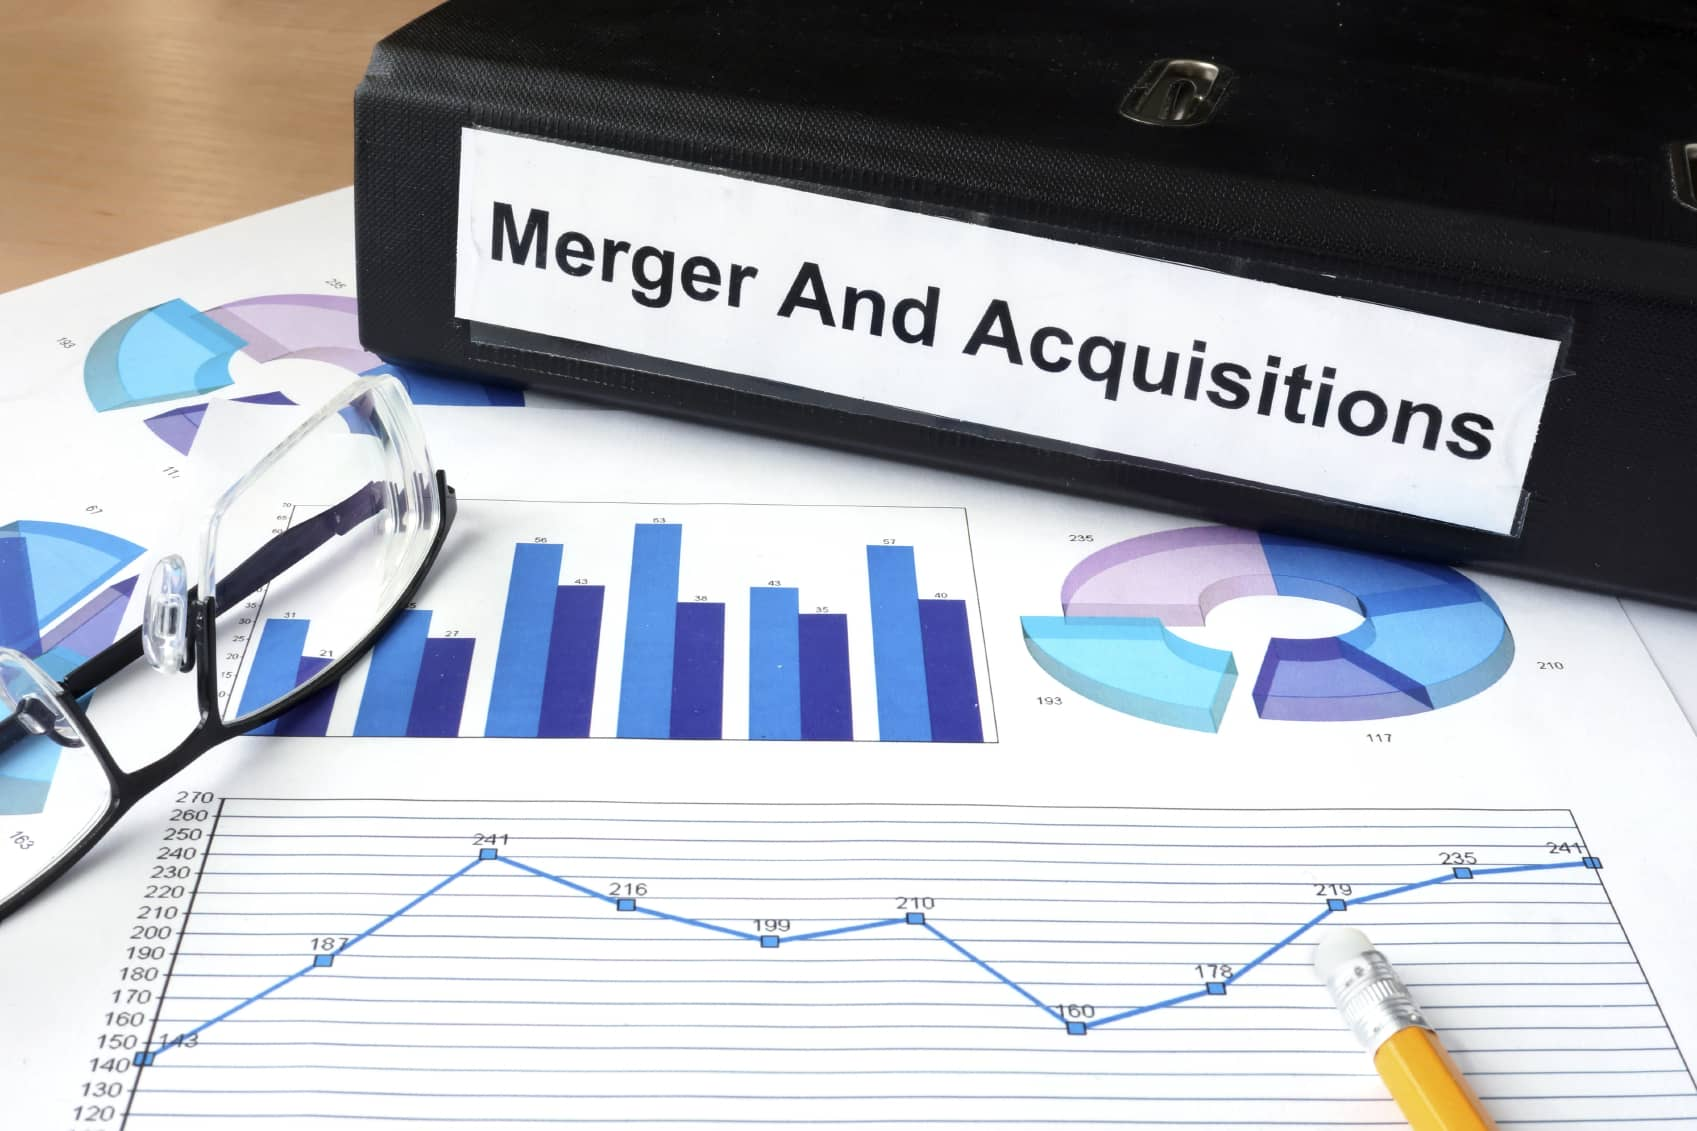 iStock_000063700335_Medium1 Total Proposes Acquisition Of Battery Developer Saft